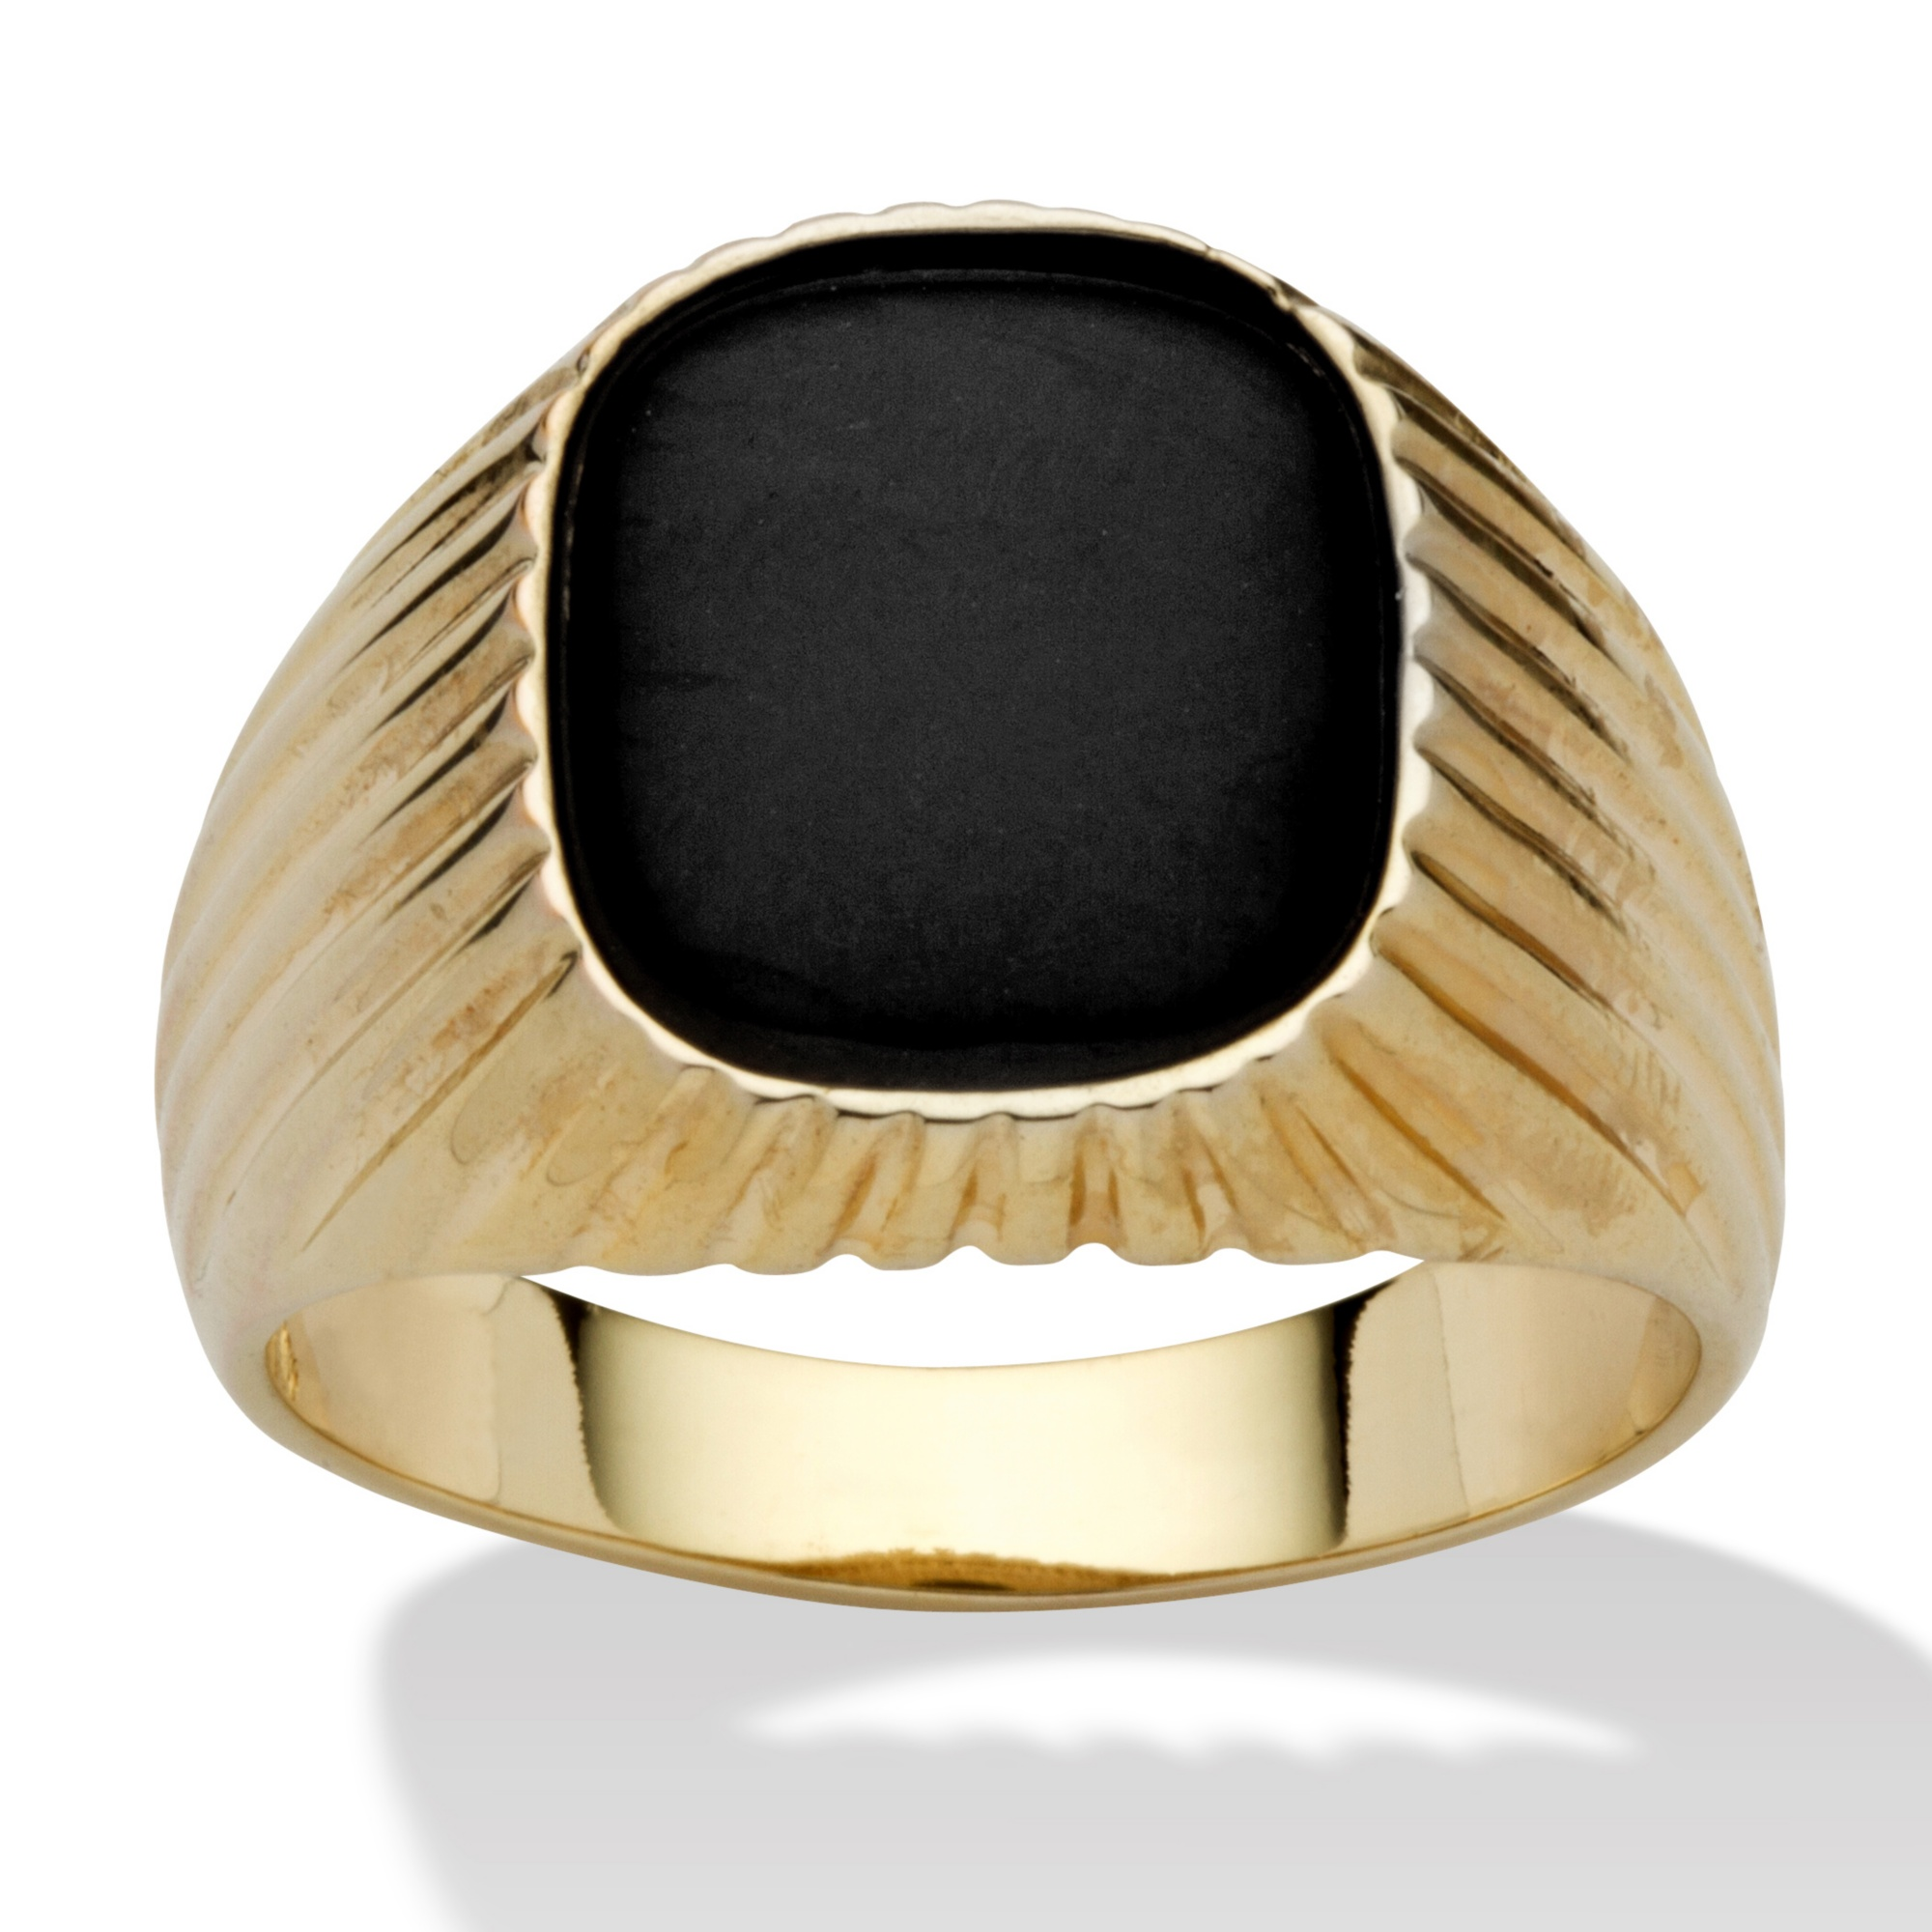 com ring from rings etsy statement buy ori ringscollection now sapphire details gold man